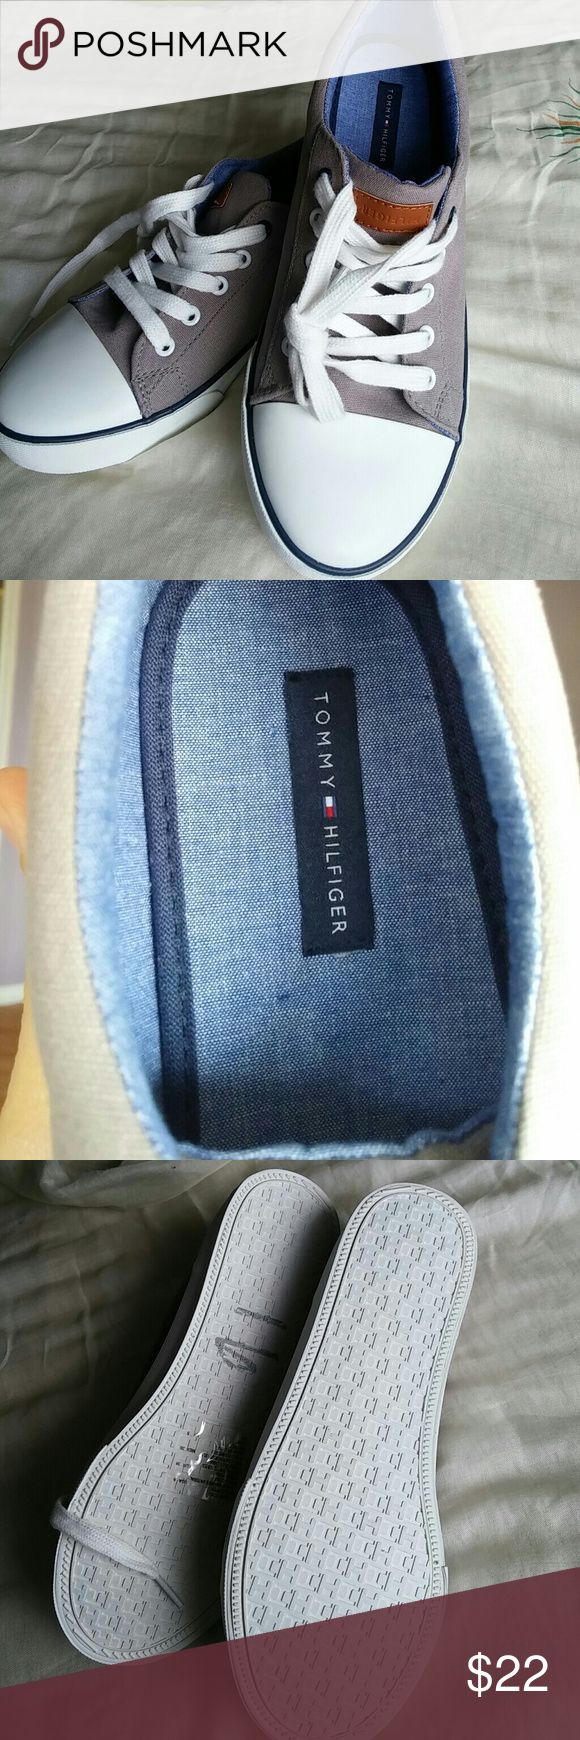 Boys new sneakers Never used. Perfect condition Tommy Hilfiger Shoes Sneakers